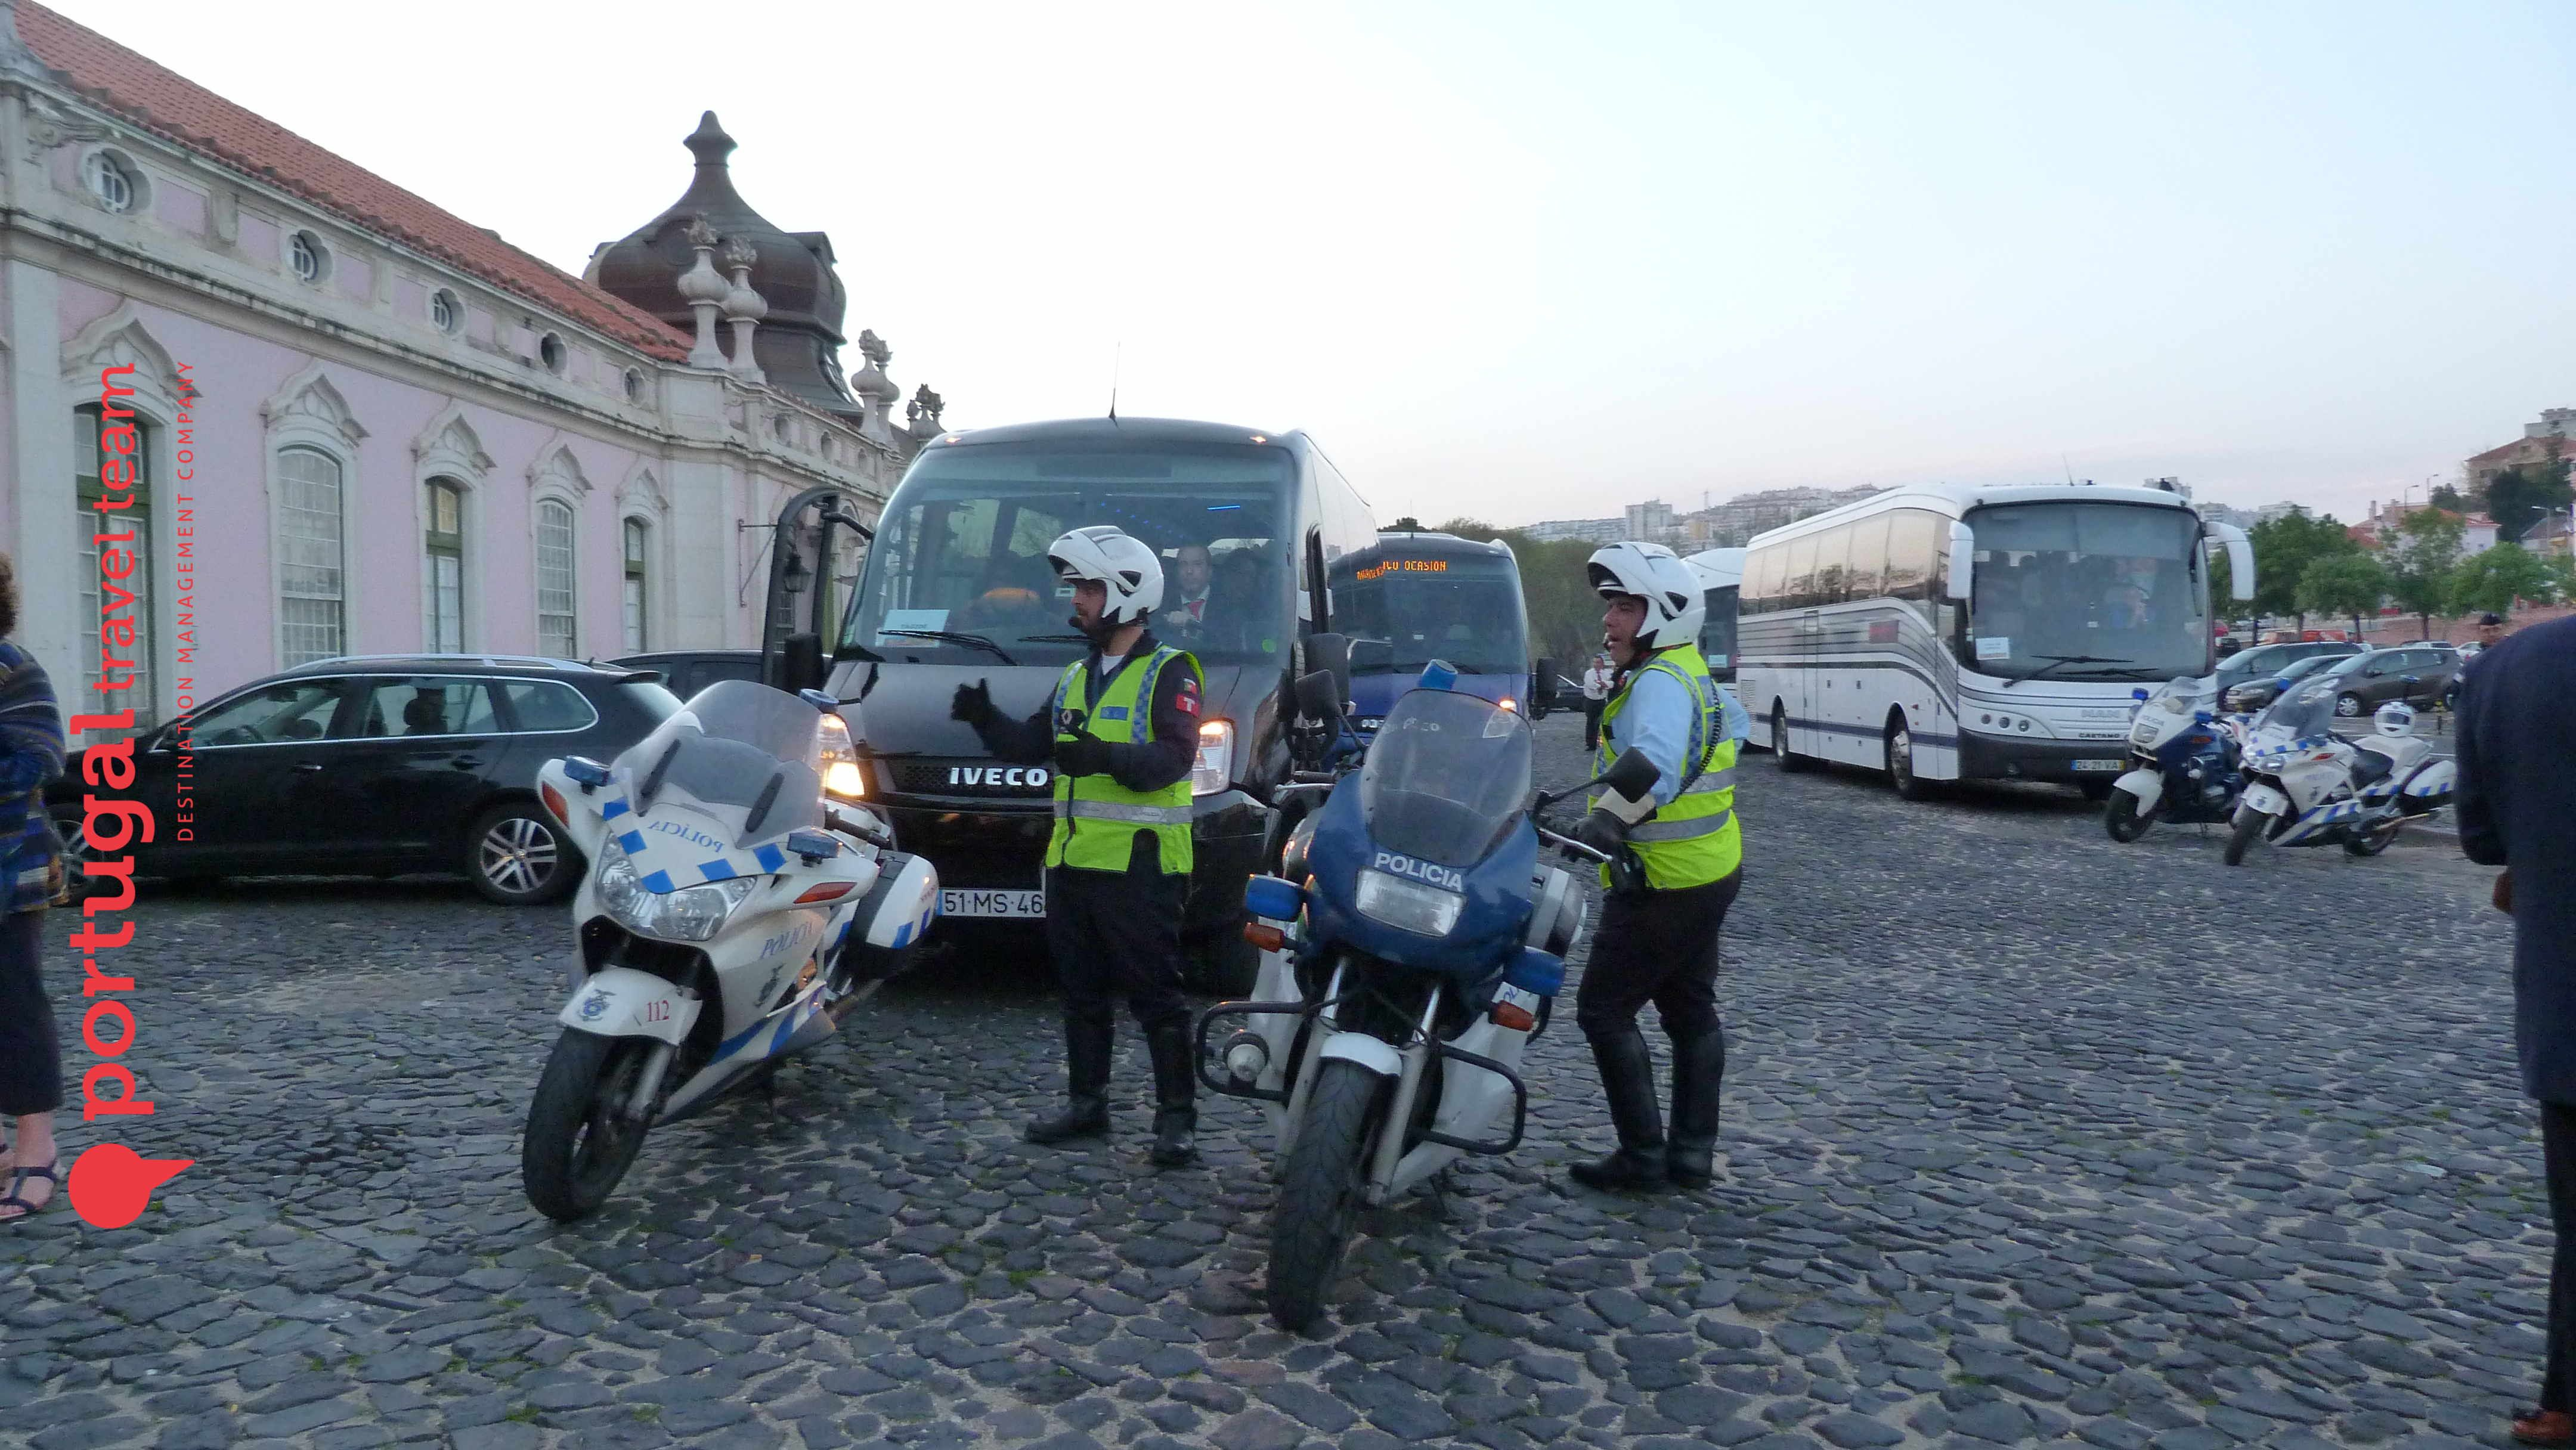 Safety above all!  #Lisbon #events #Portugal #Palace